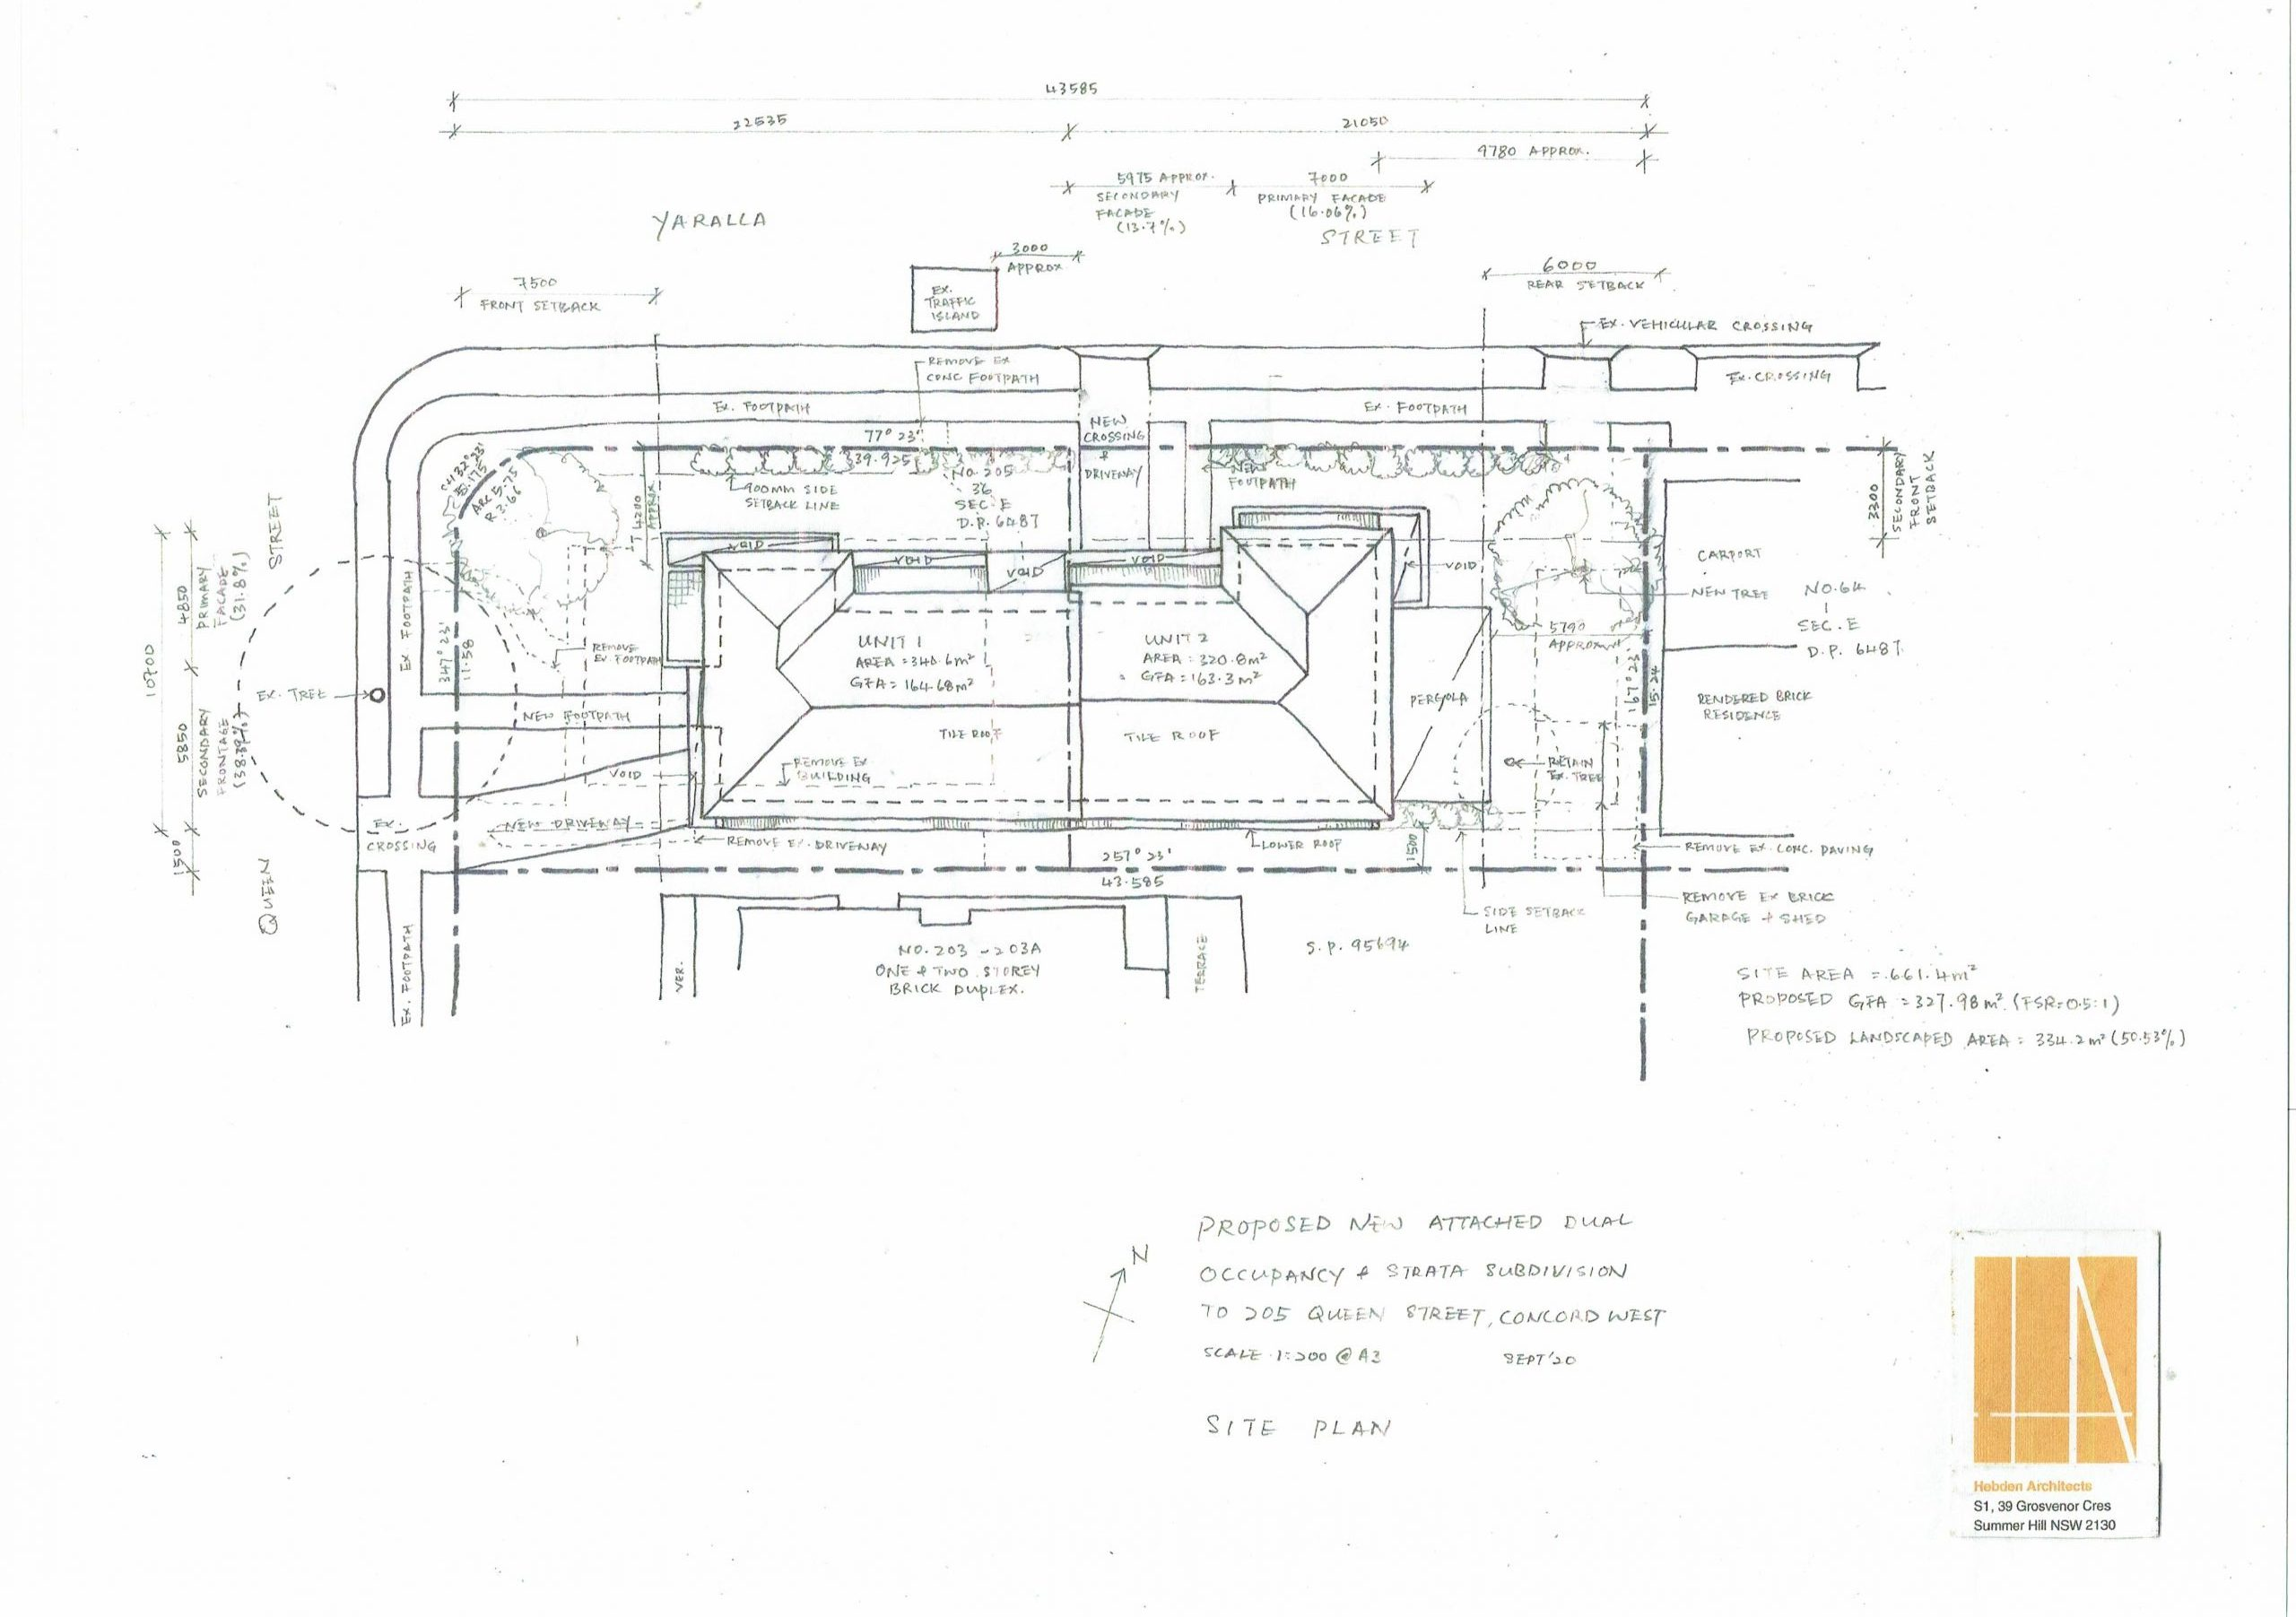 Duplex Concord West Sketch Drawings 16 09 2020 Page 1